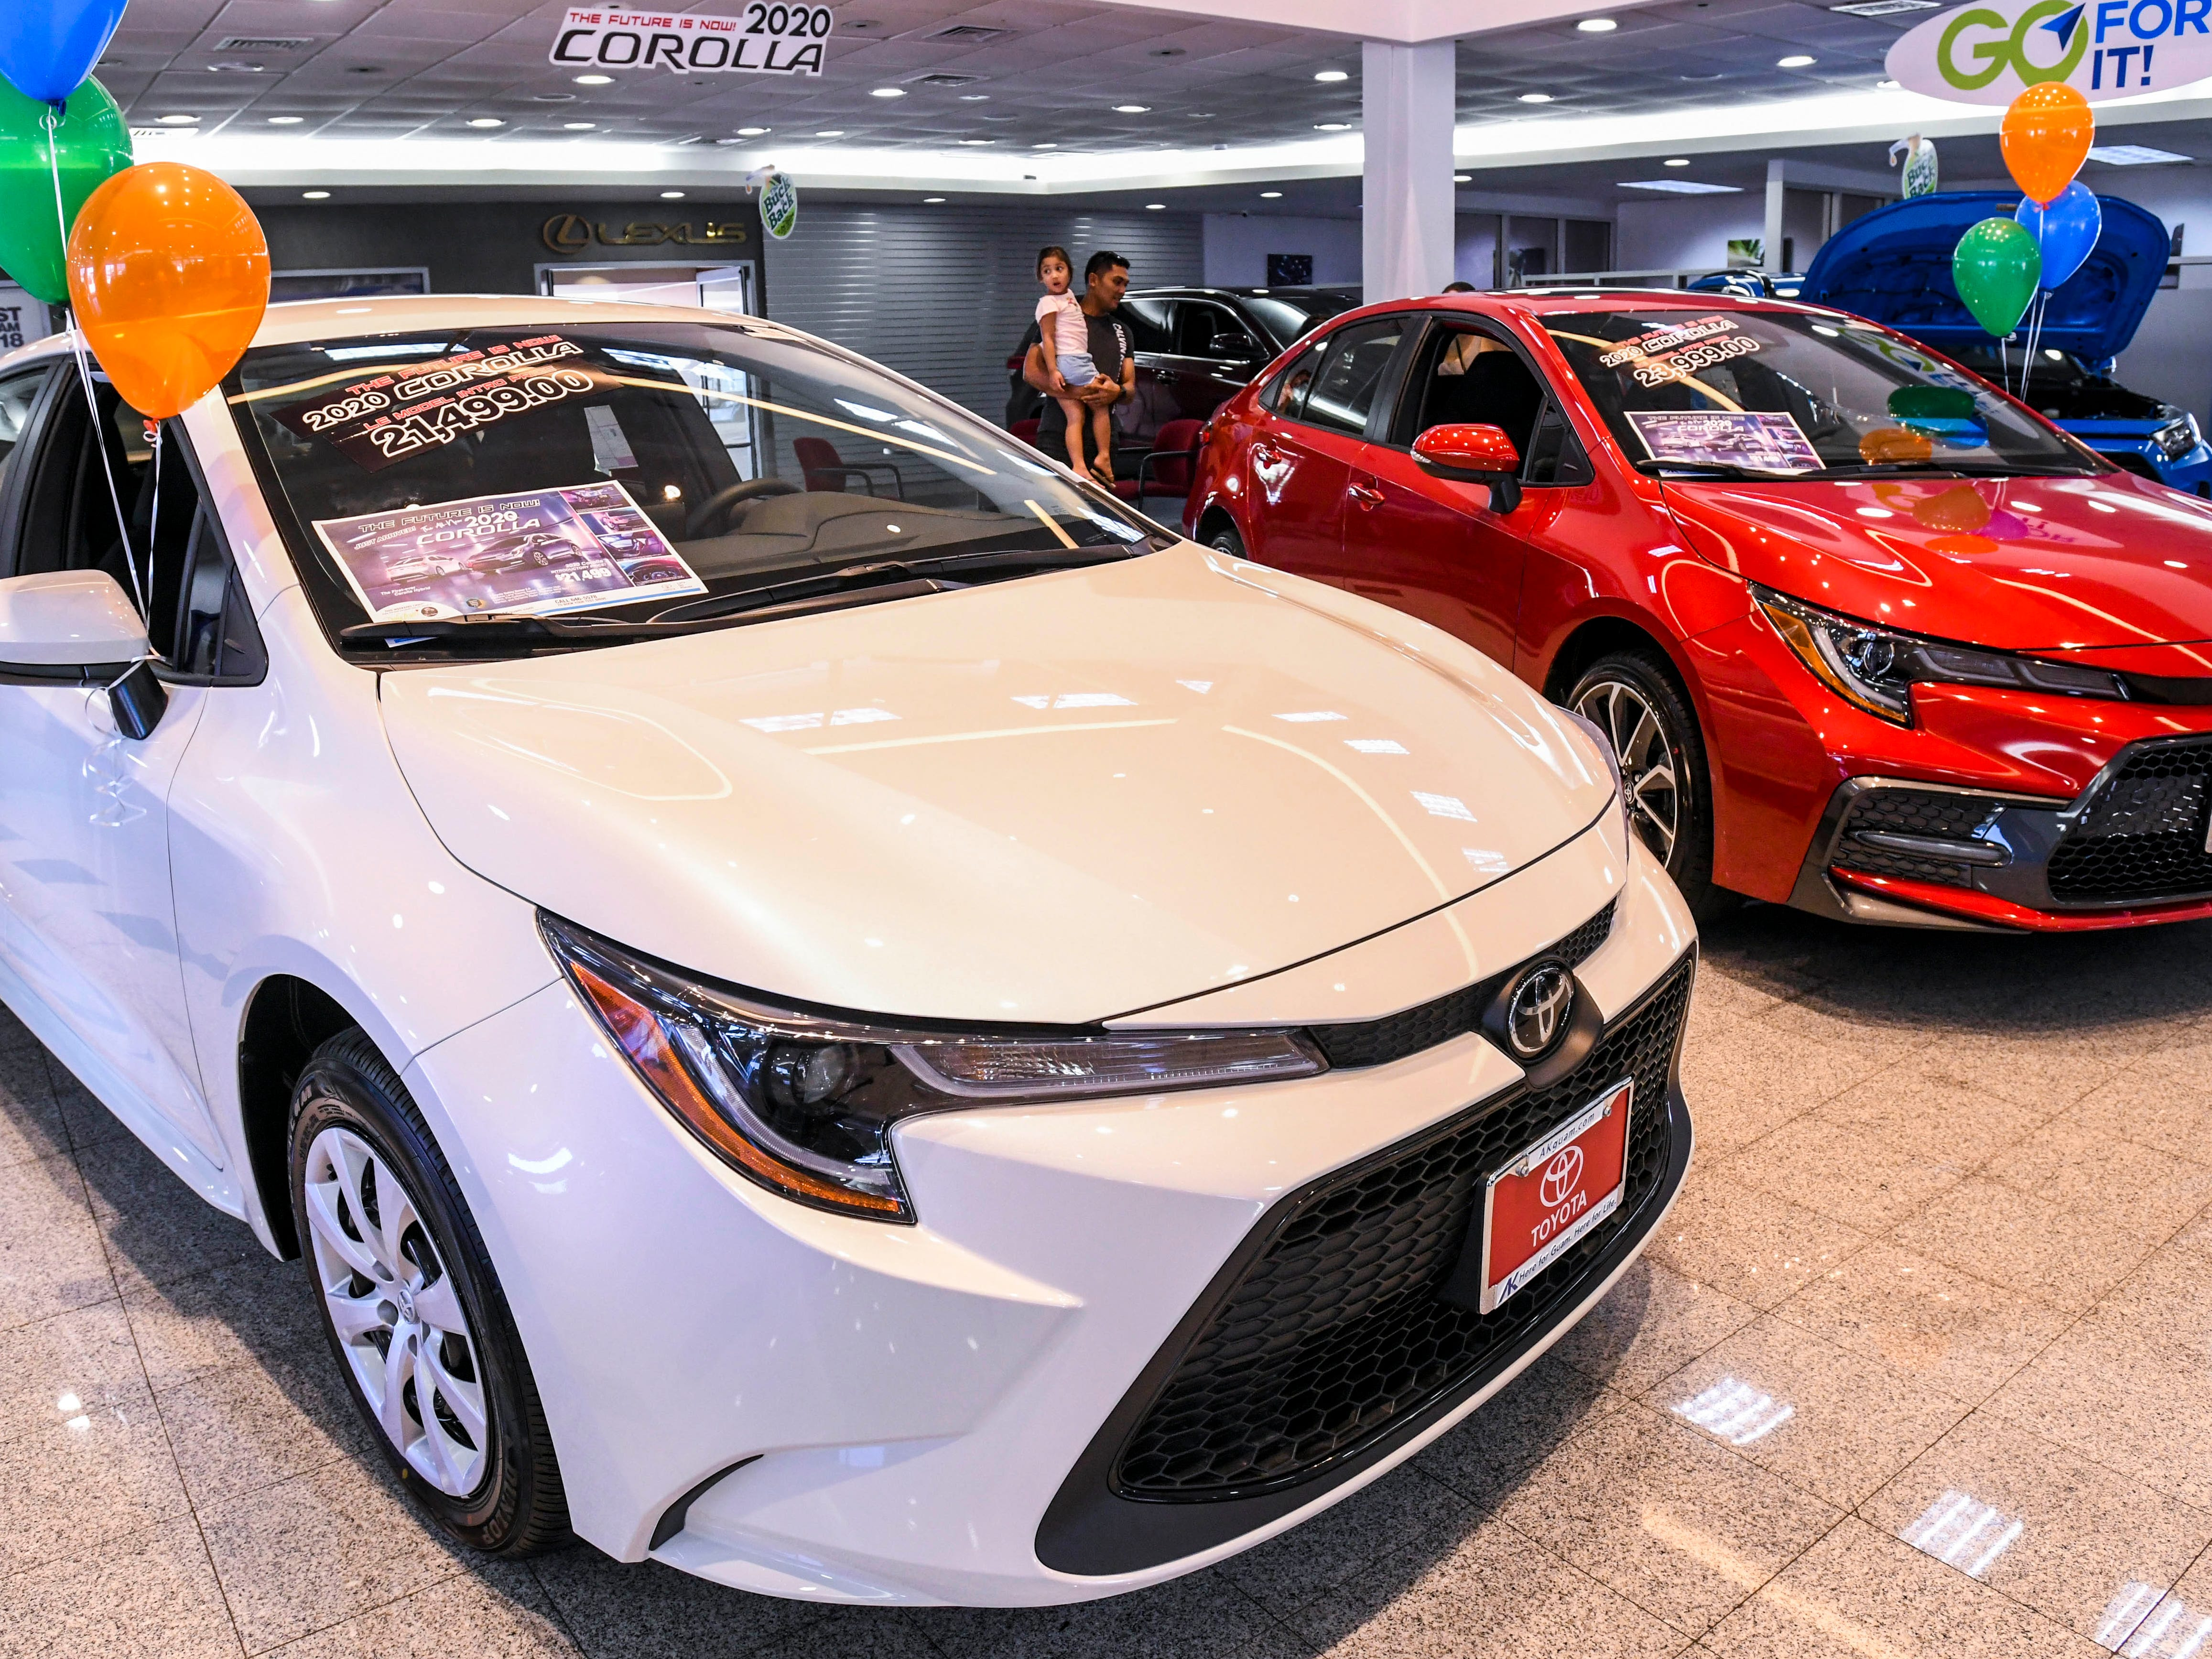 Prospective car shoppers look over the two models of the newly redesigned 2020 Toyota Corolla, as seen on the showroom floor of the Atkins Kroll dealership in Tamuning, on Saturday, Feb. 9, 2019. Atkins Kroll has rolled out three models of the sedan: Toyota Corolla LE (Luxury Edition), front; the Toyota Corolla SE (Sport Edition), right, and a Toyota Corolla HE (Hybrid Edition), not seen.